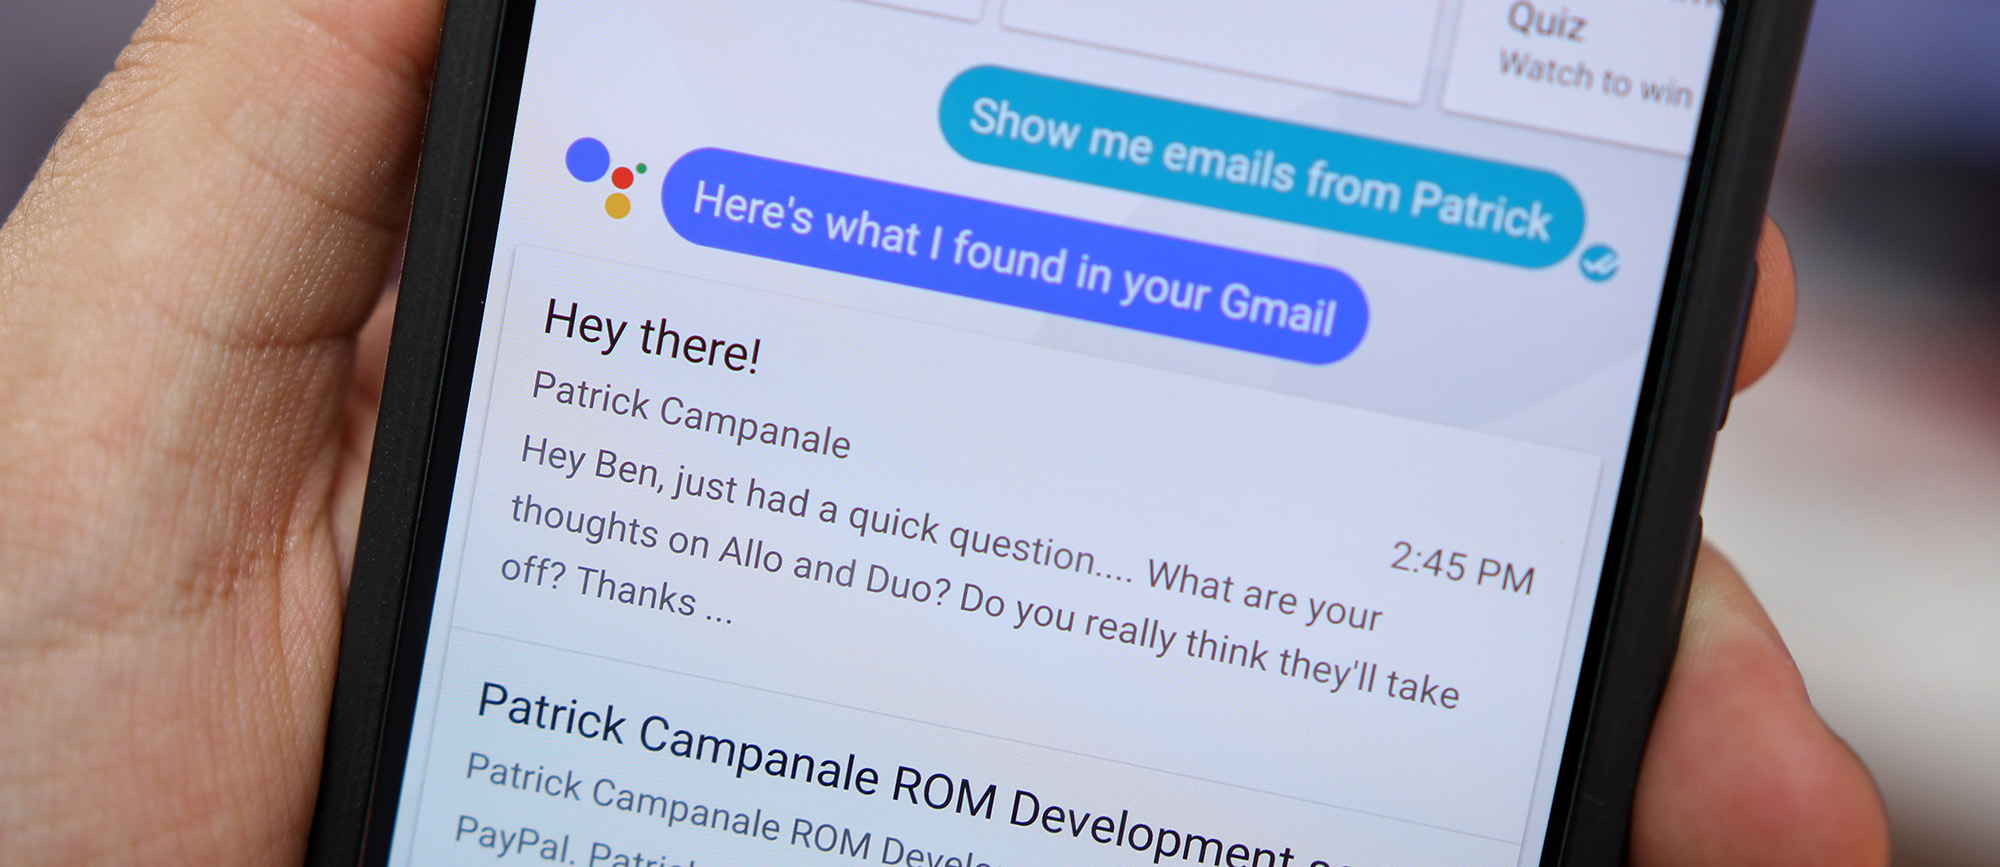 allo_assistant_emails_1